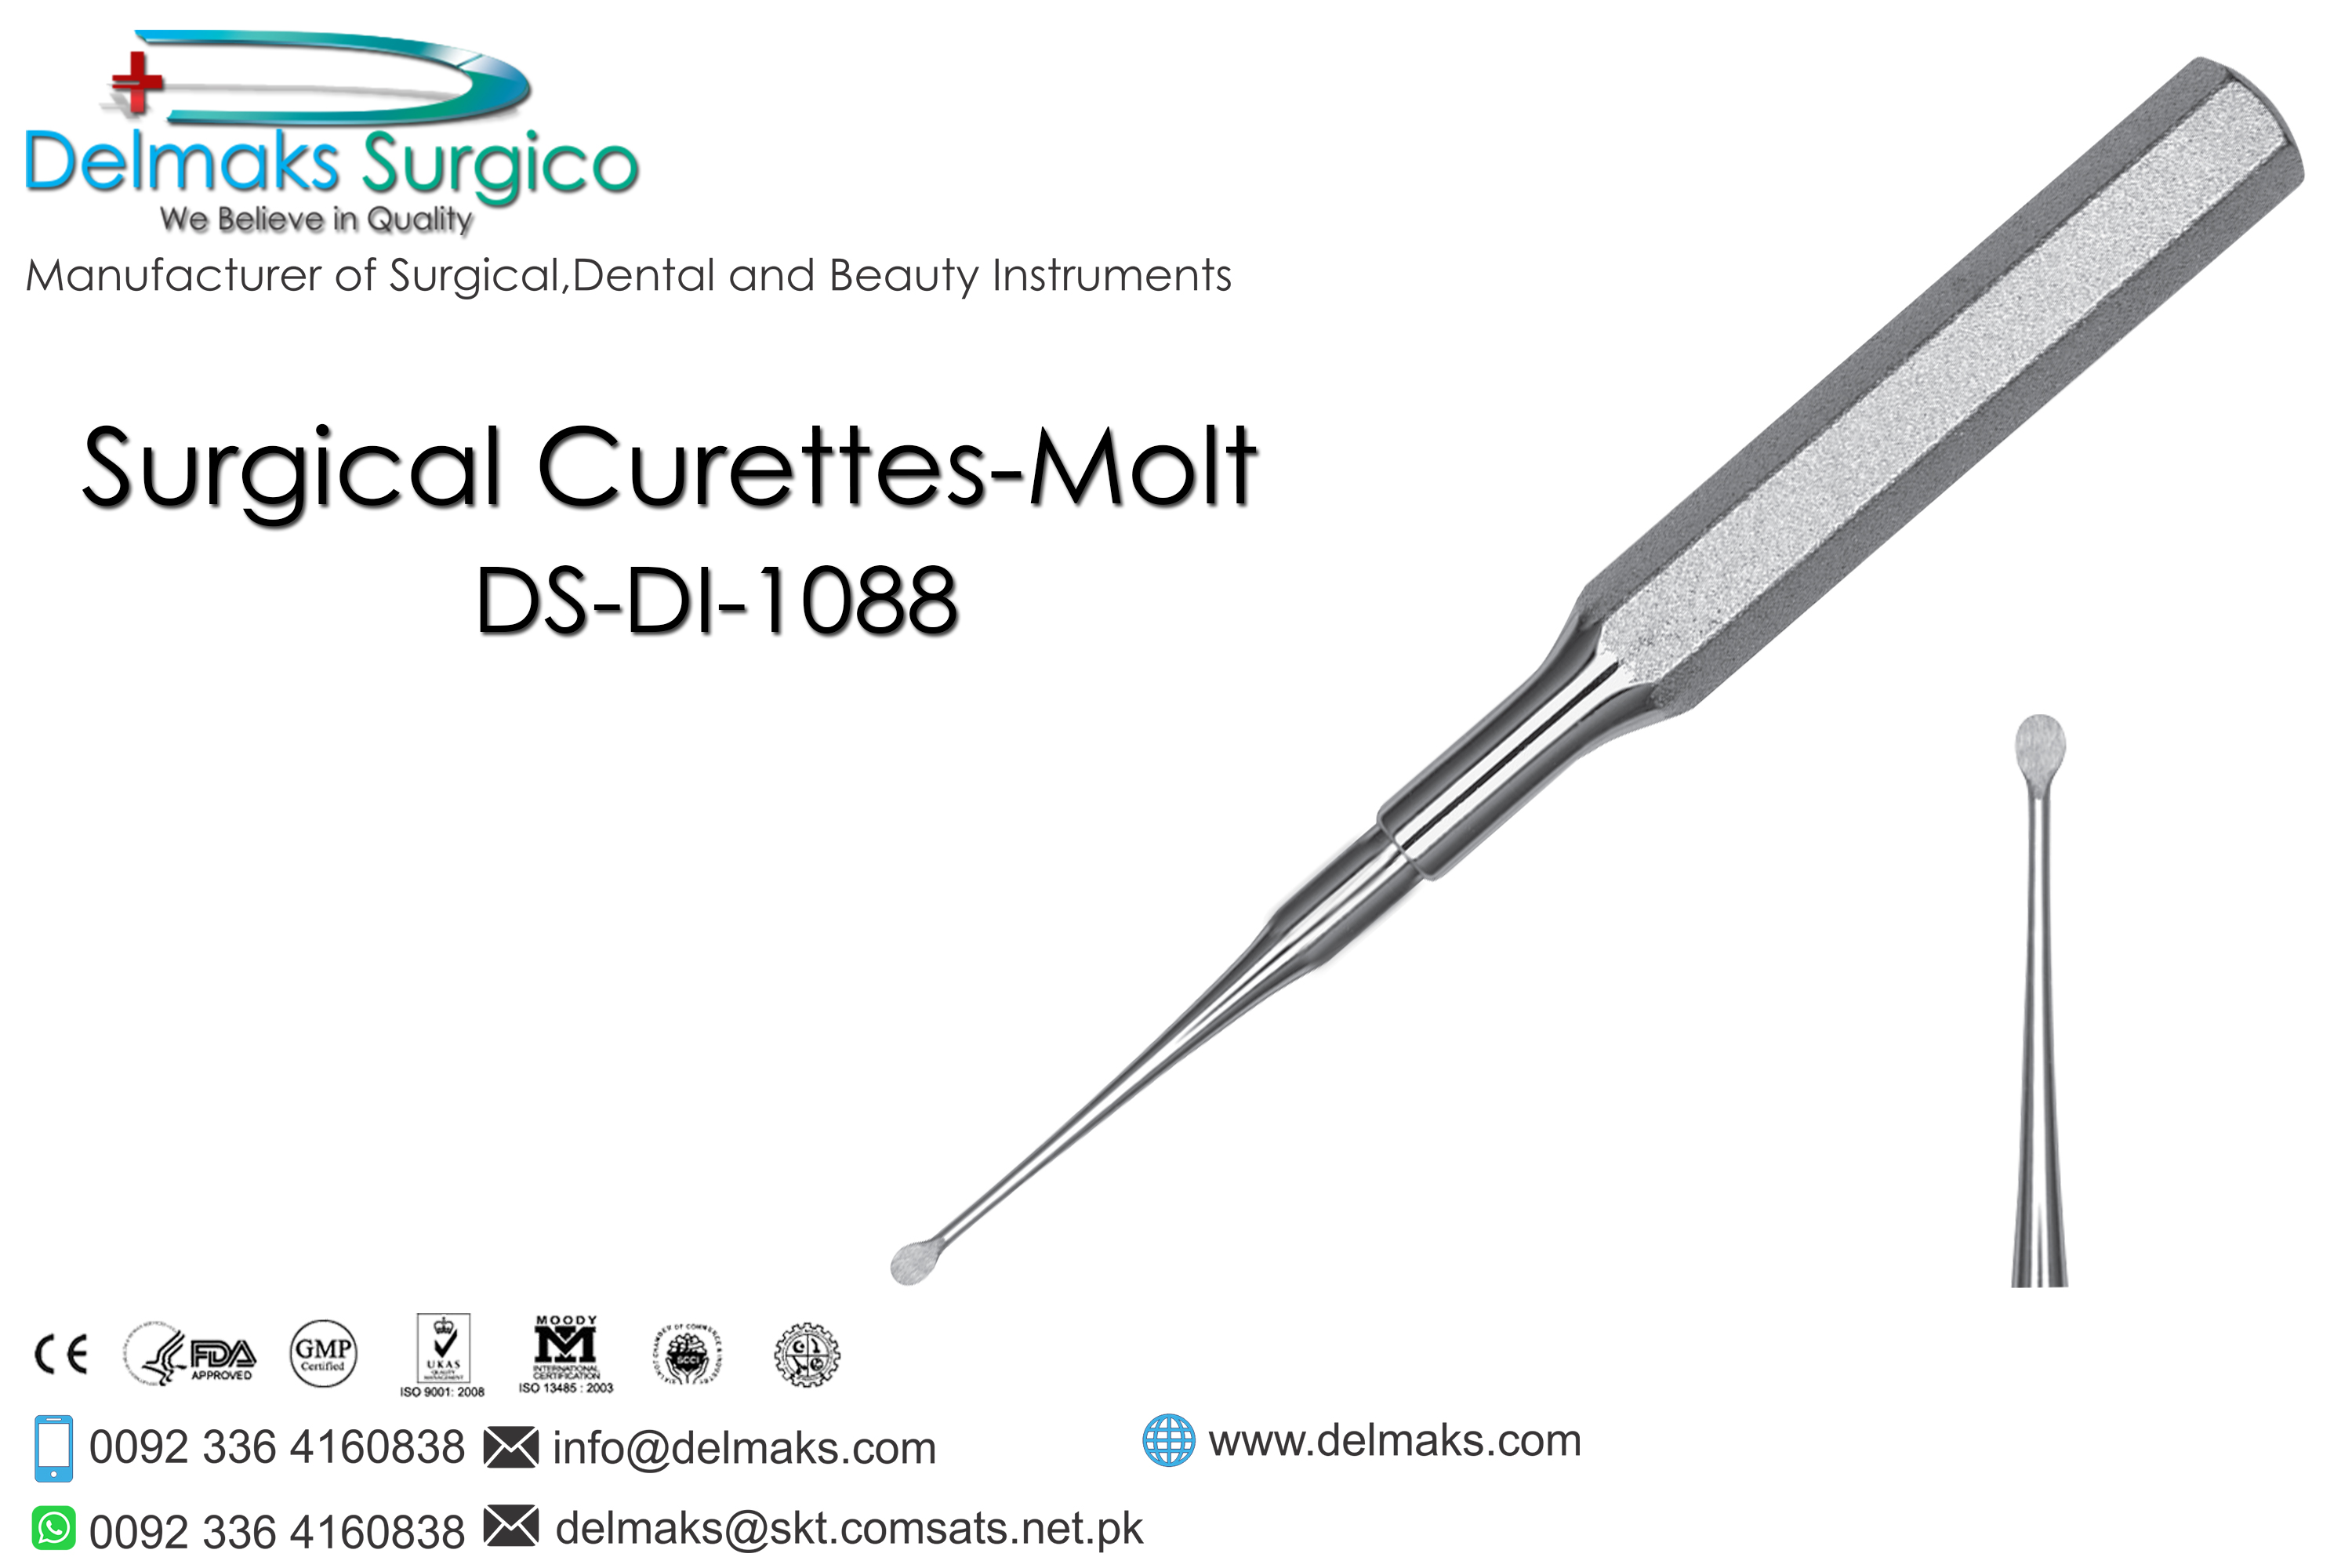 Surgical Curettes-Molt-Oral And Maxillofacial Surgery Instruments-Dental Instruments-Delmaks Surgico